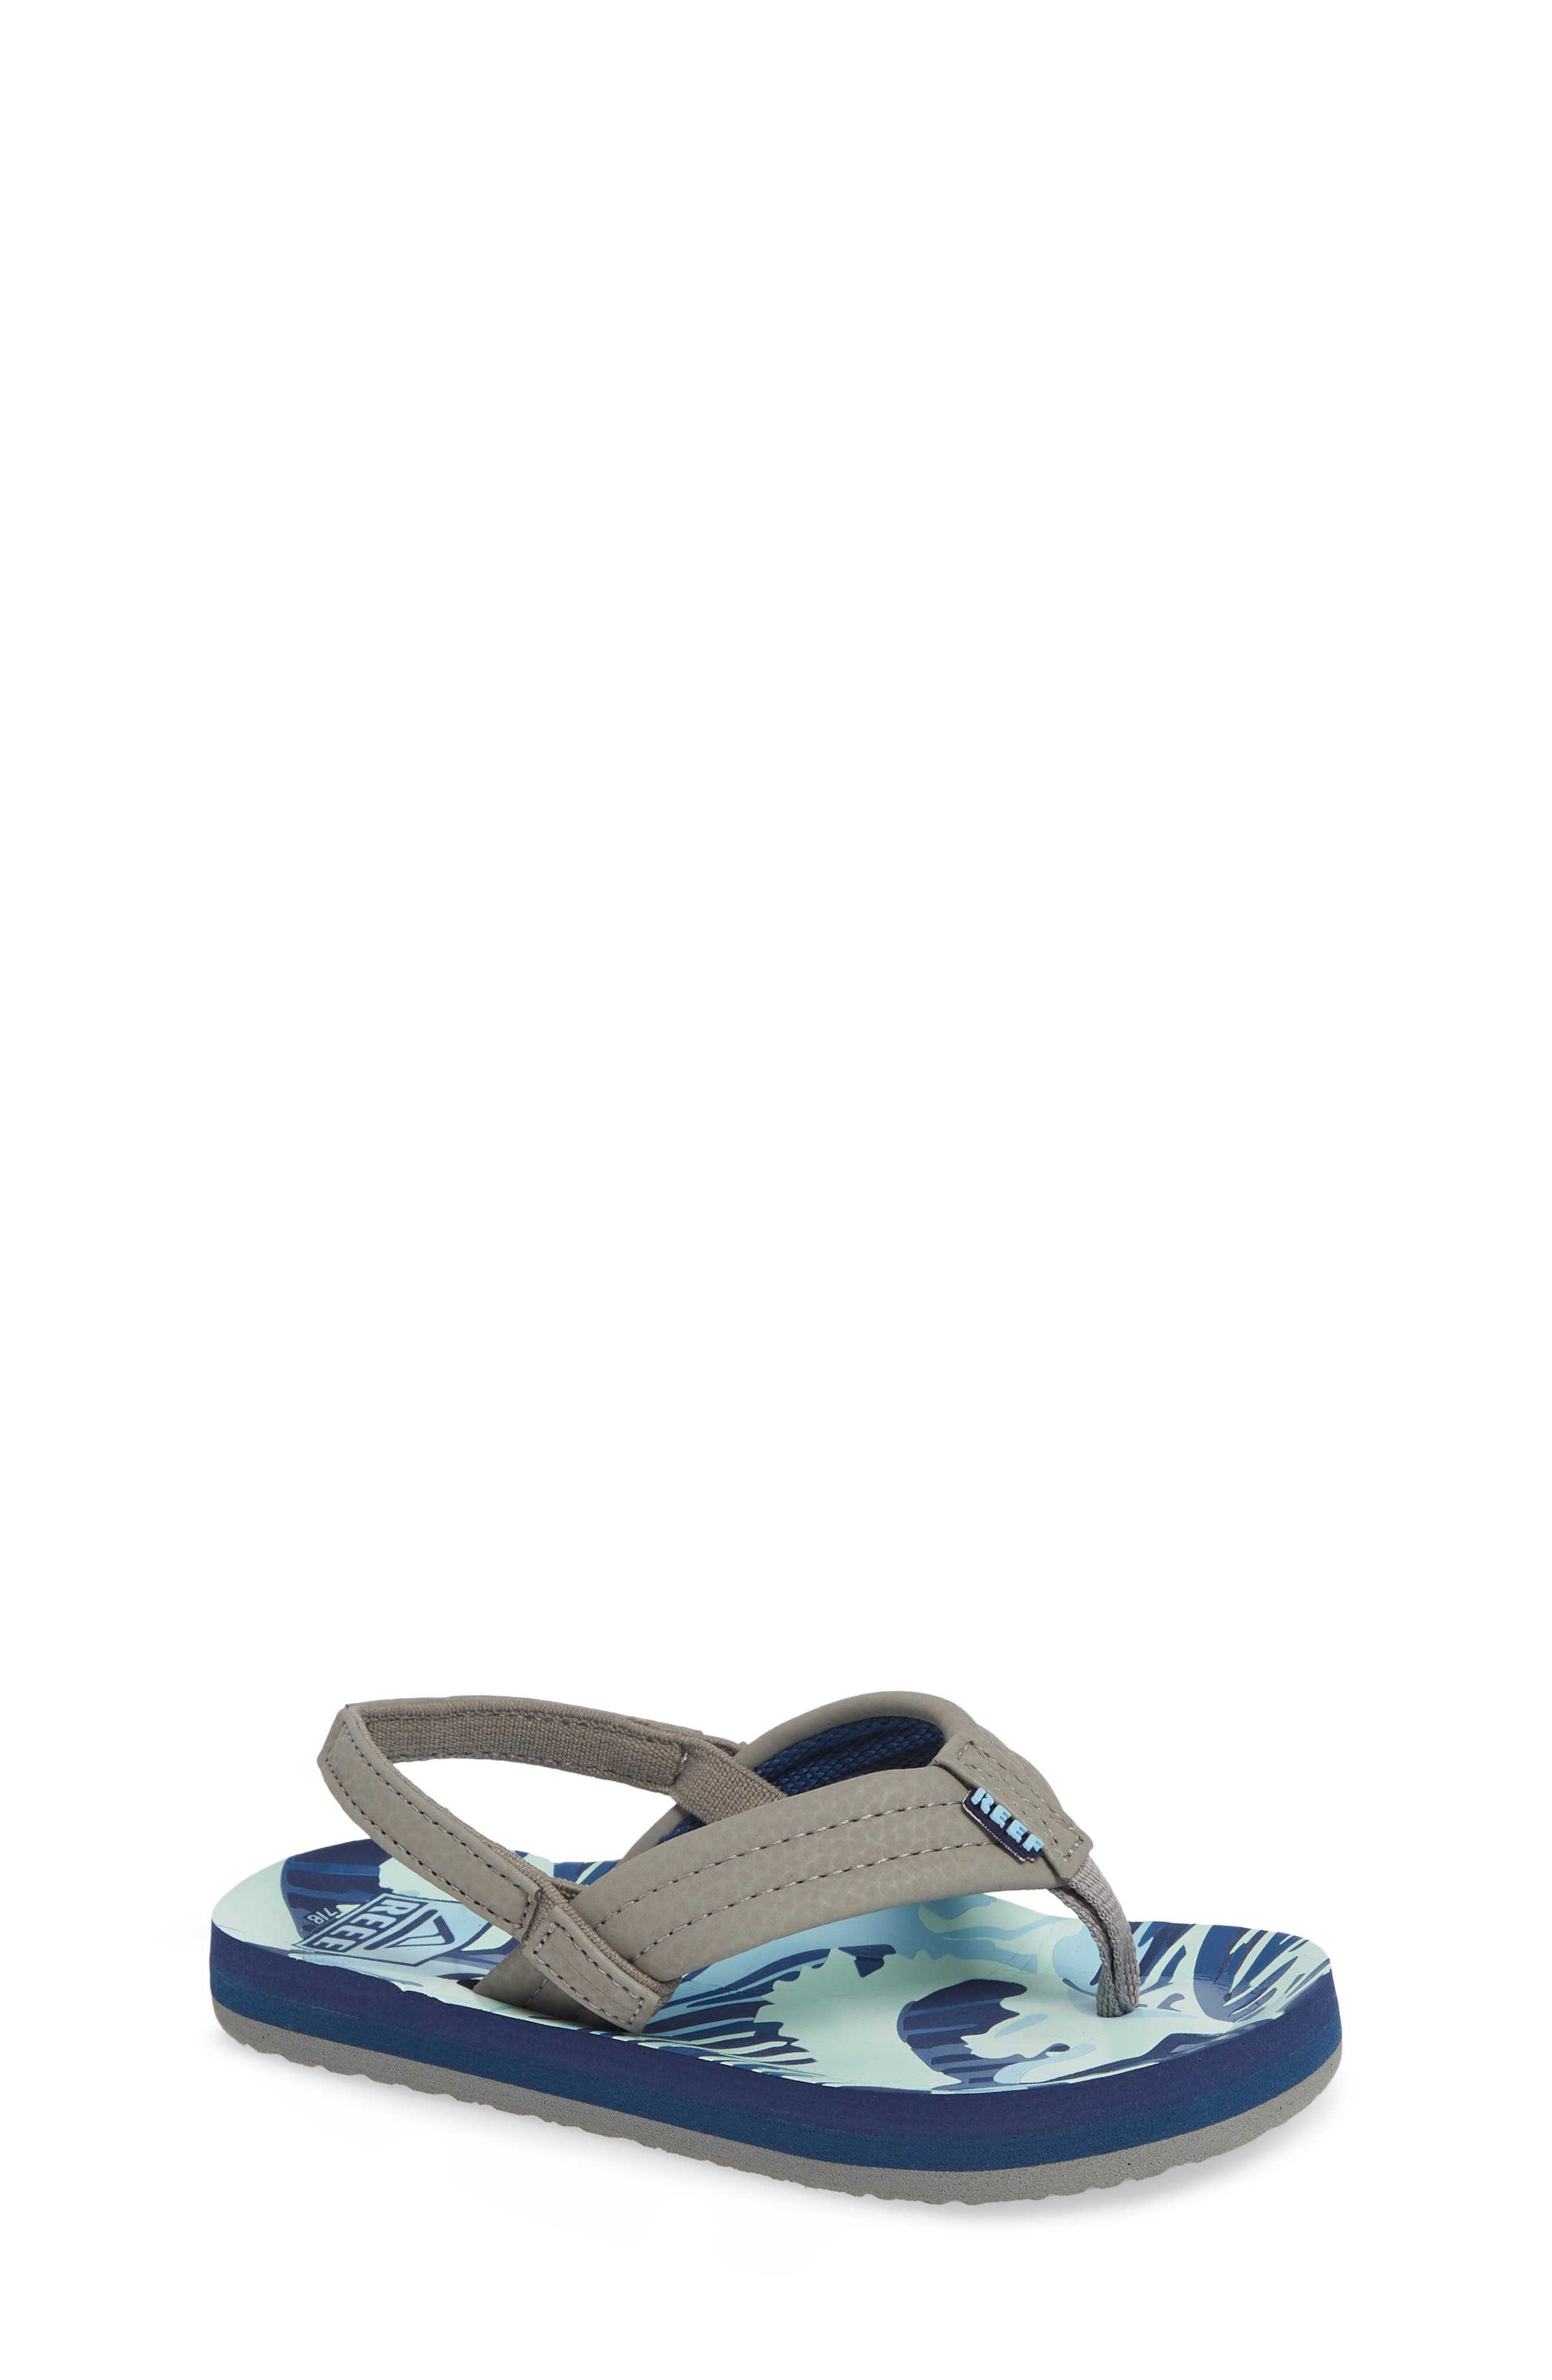 Toddler Reef Ahi Sandal Size 11 M  Blue